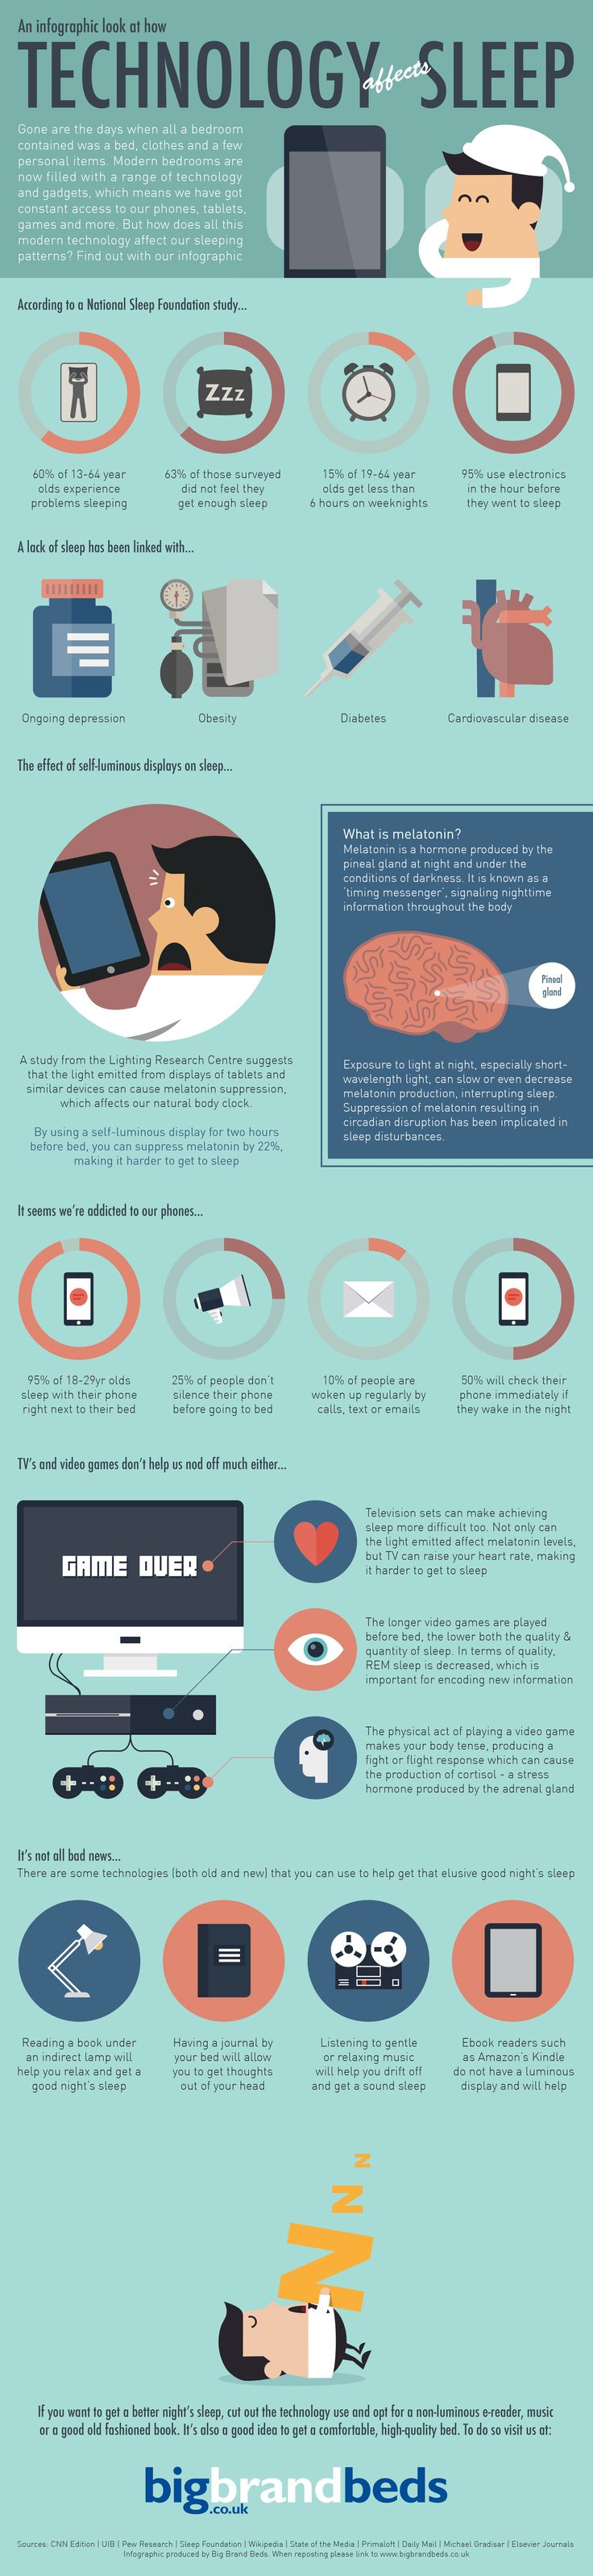 How Technology Affects Sleep — an infographic by the team at Big Brand Beds